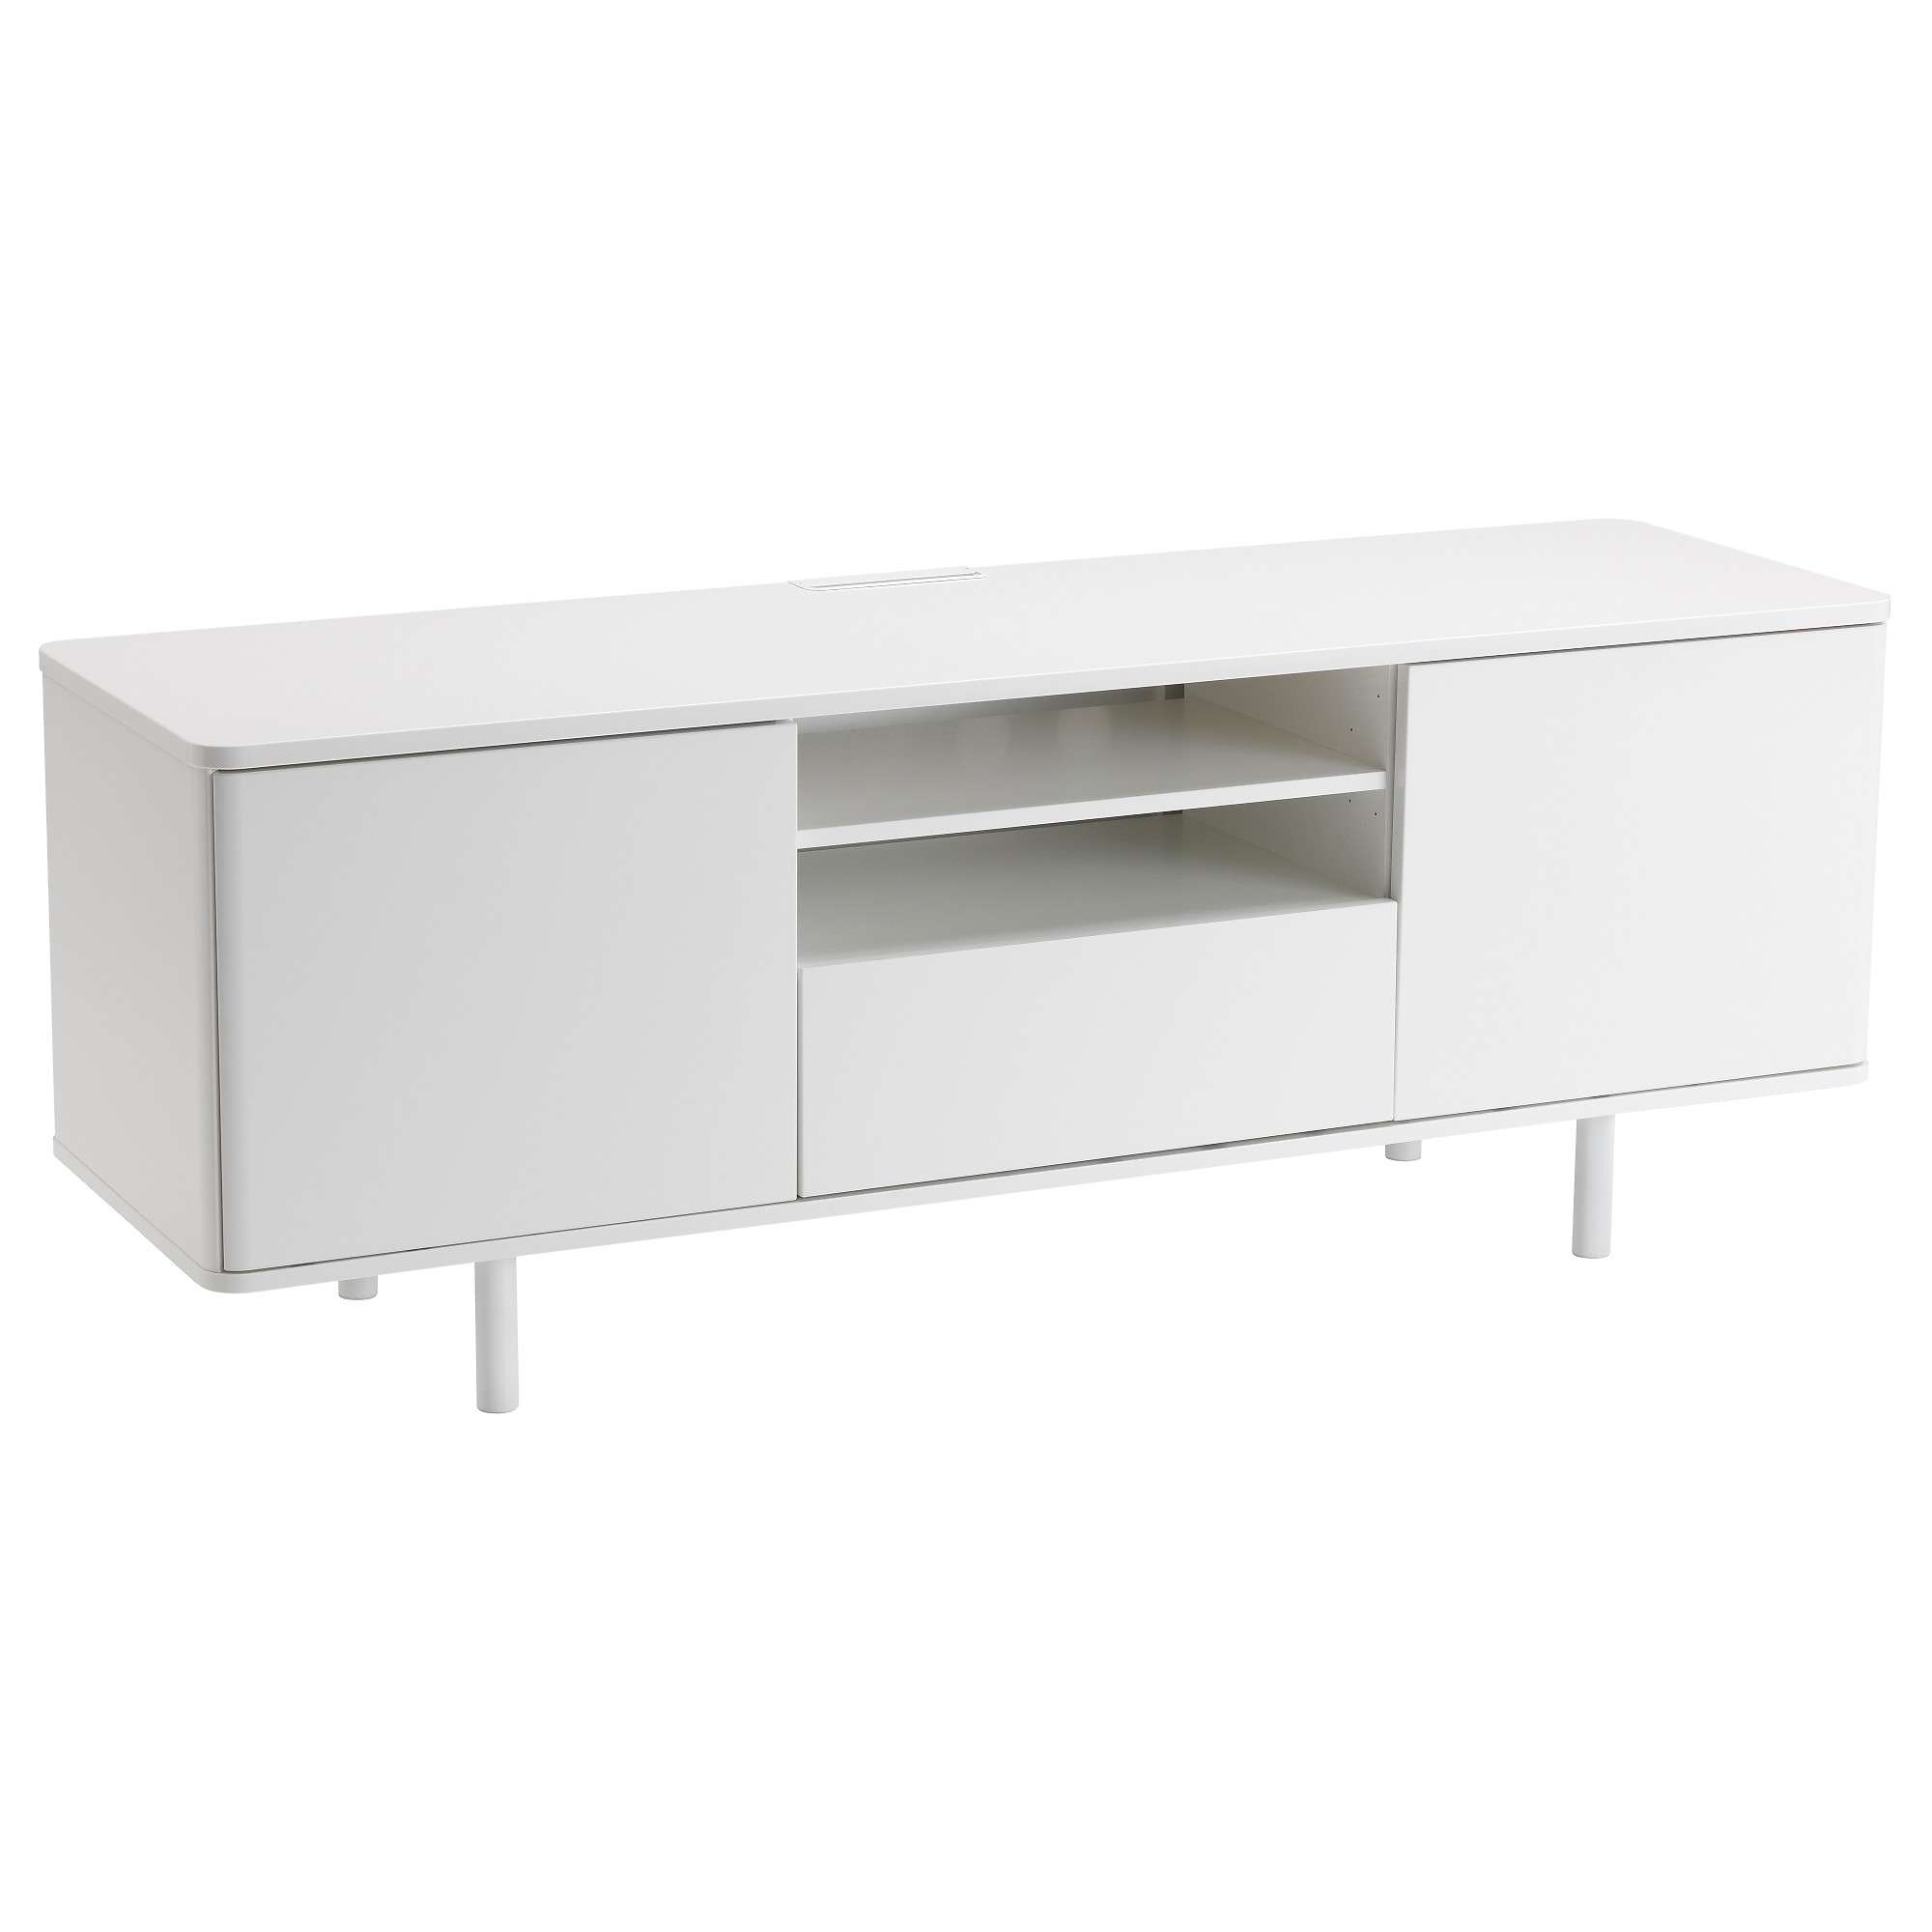 Mostorp Tv Bench White 159x46 Cm – Ikea Throughout White Gloss Tv Stands With Drawers (View 11 of 15)